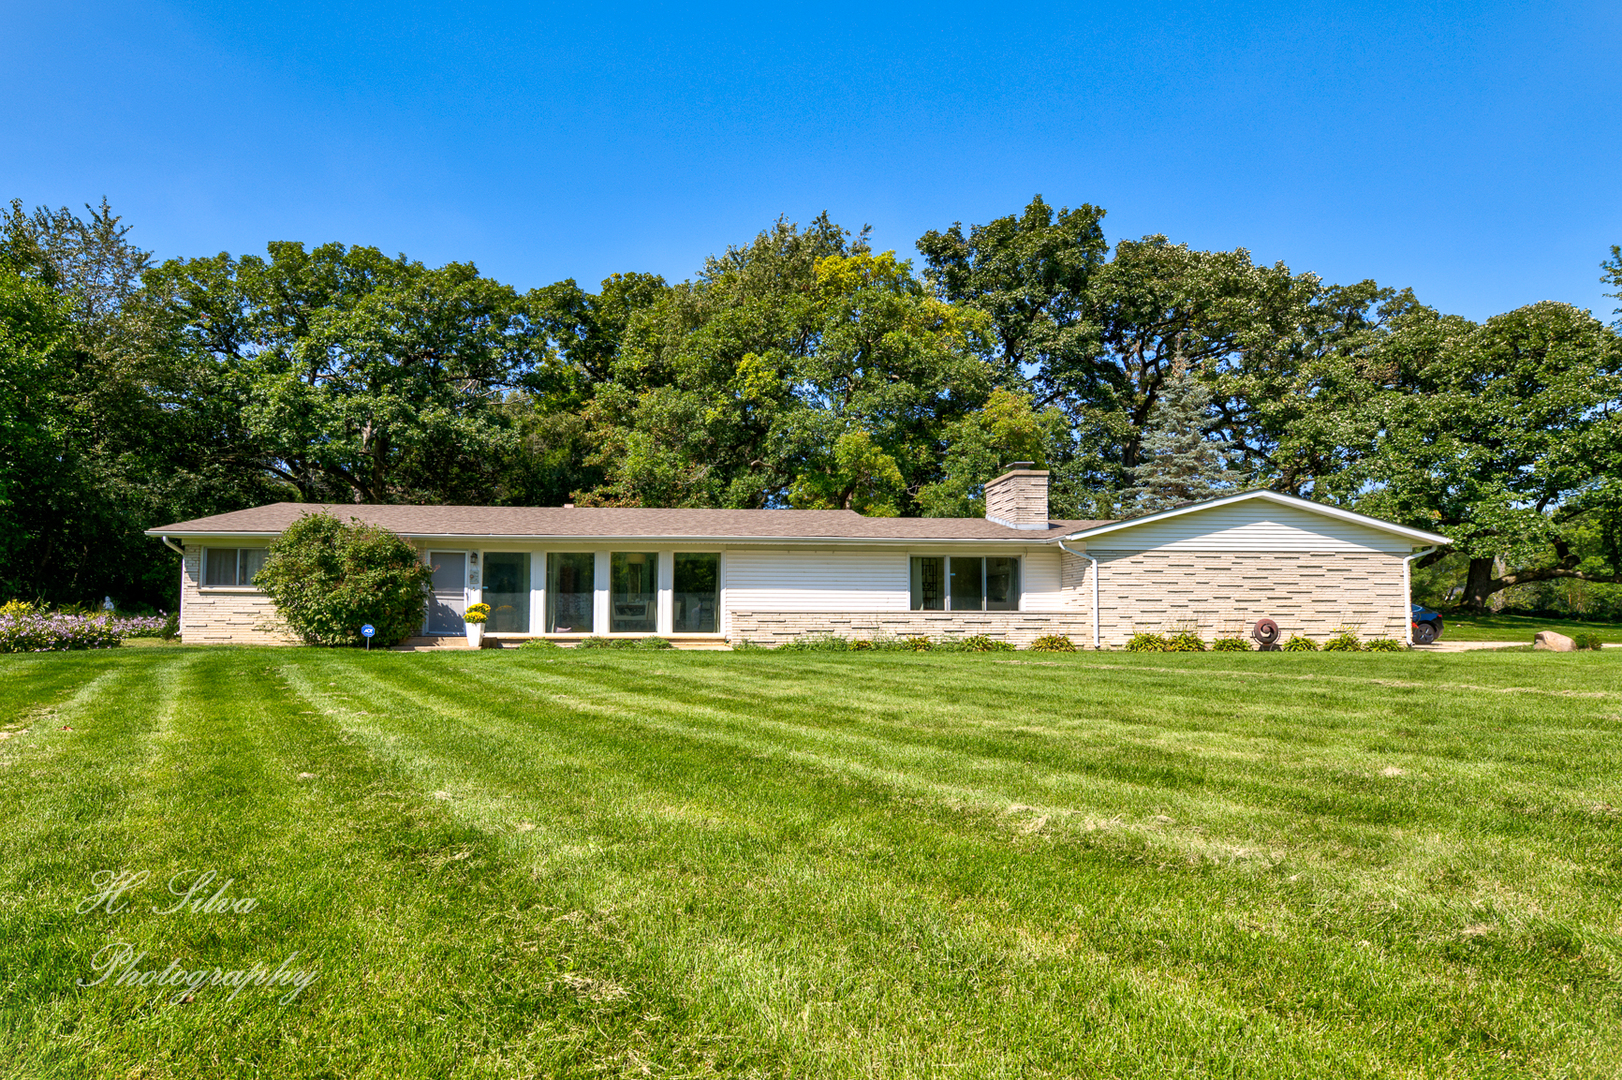 Photo for 36W600 Shady Lane, Dundee, IL 60118 (MLS # 10531705)